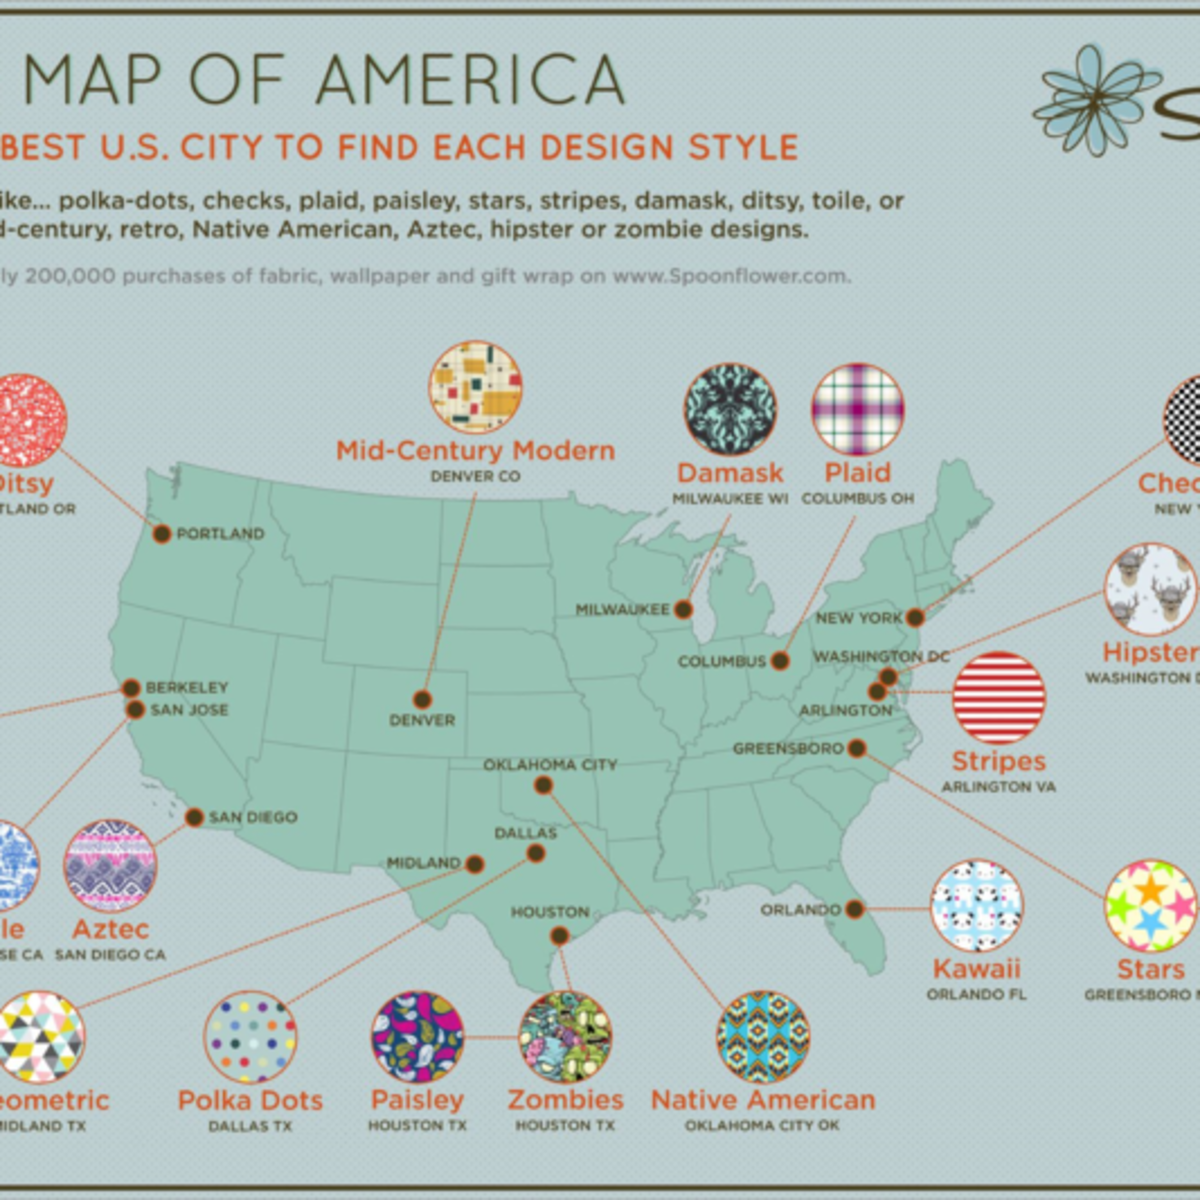 Spoonflower decor map of America